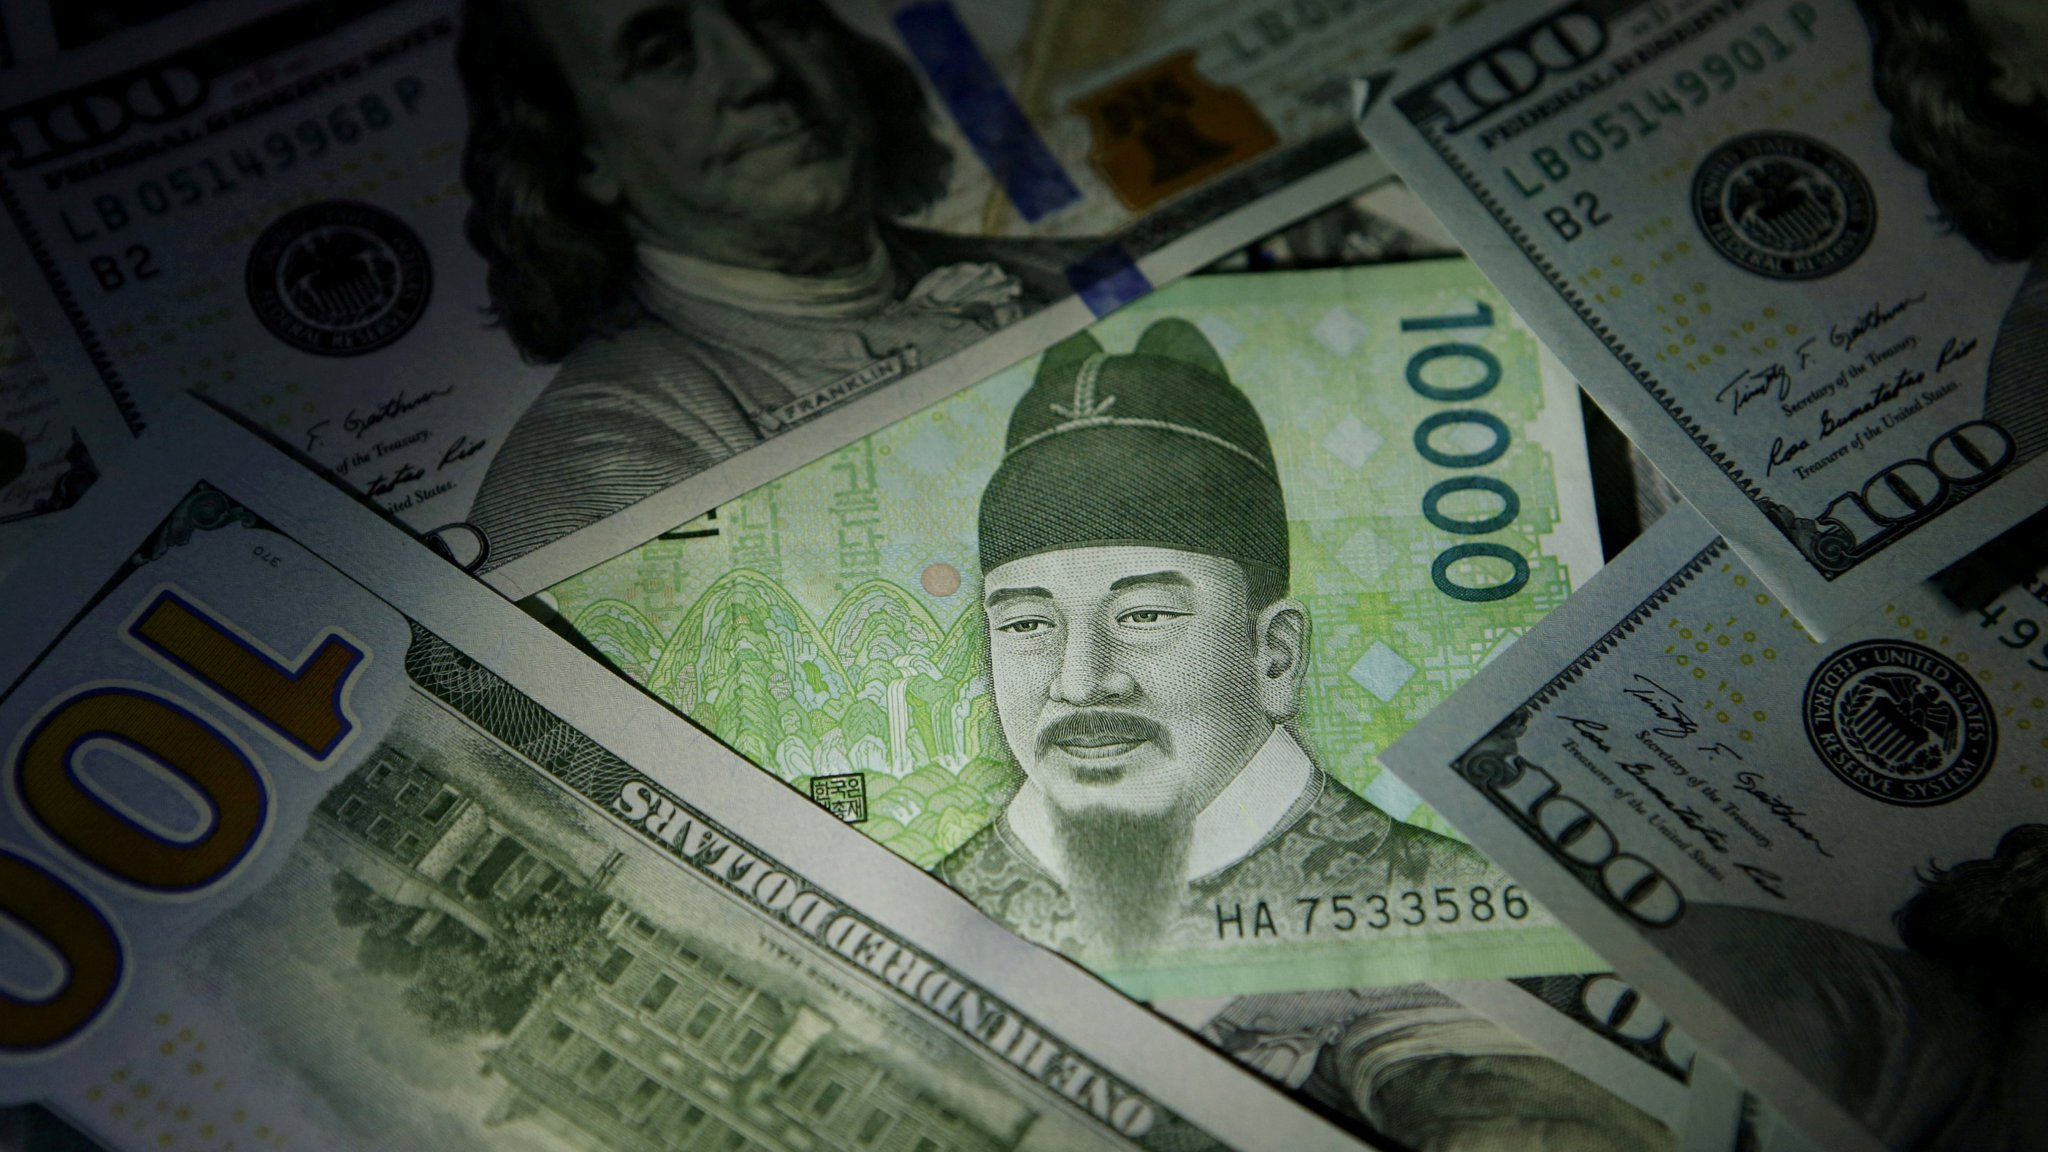 US and South Korea close to side agreement on currency | Financial Times